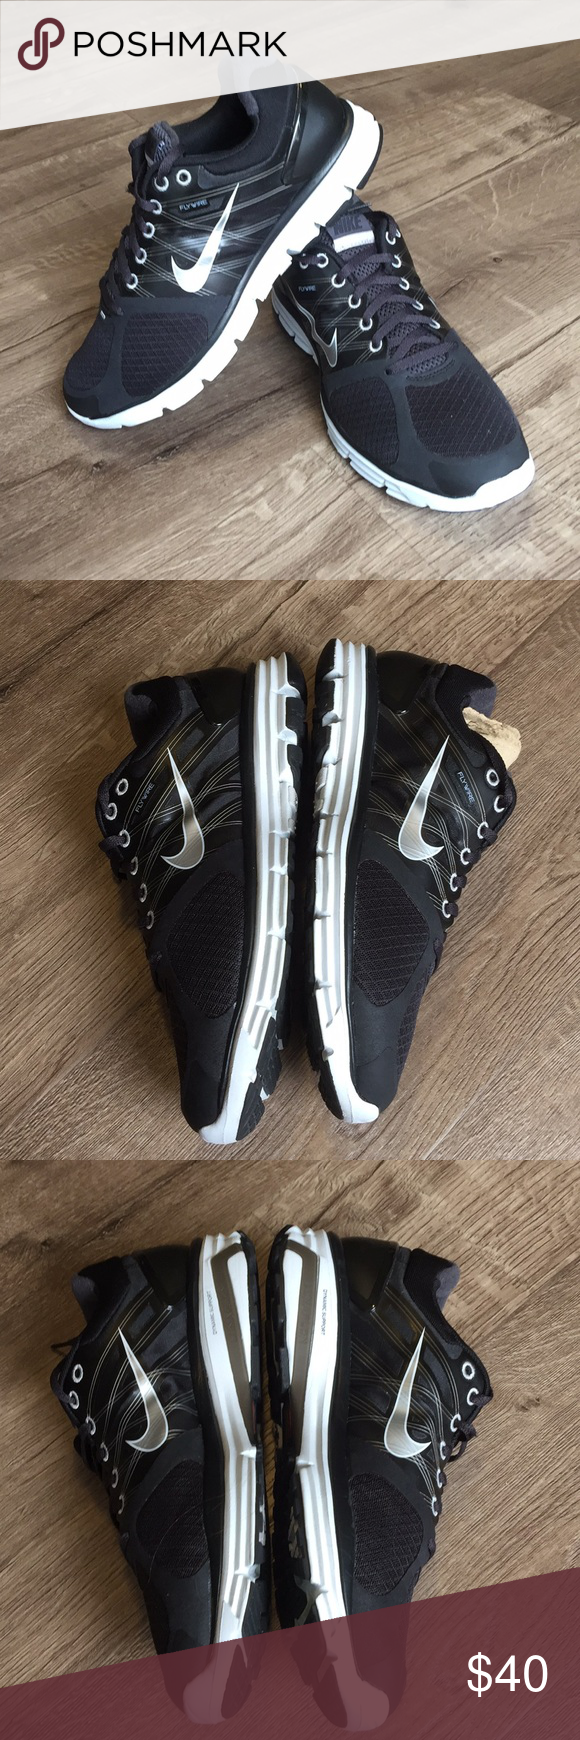 daño corrupción Edición  NIKE LUNARGLIDE 2 FLYWIRE DYNAMIC SUPPORT Men's Nike lunar glide shoes very  good looking! Shoes are in very good condition. Nik… | Nike lunarglide, Nike,  Nike shoes